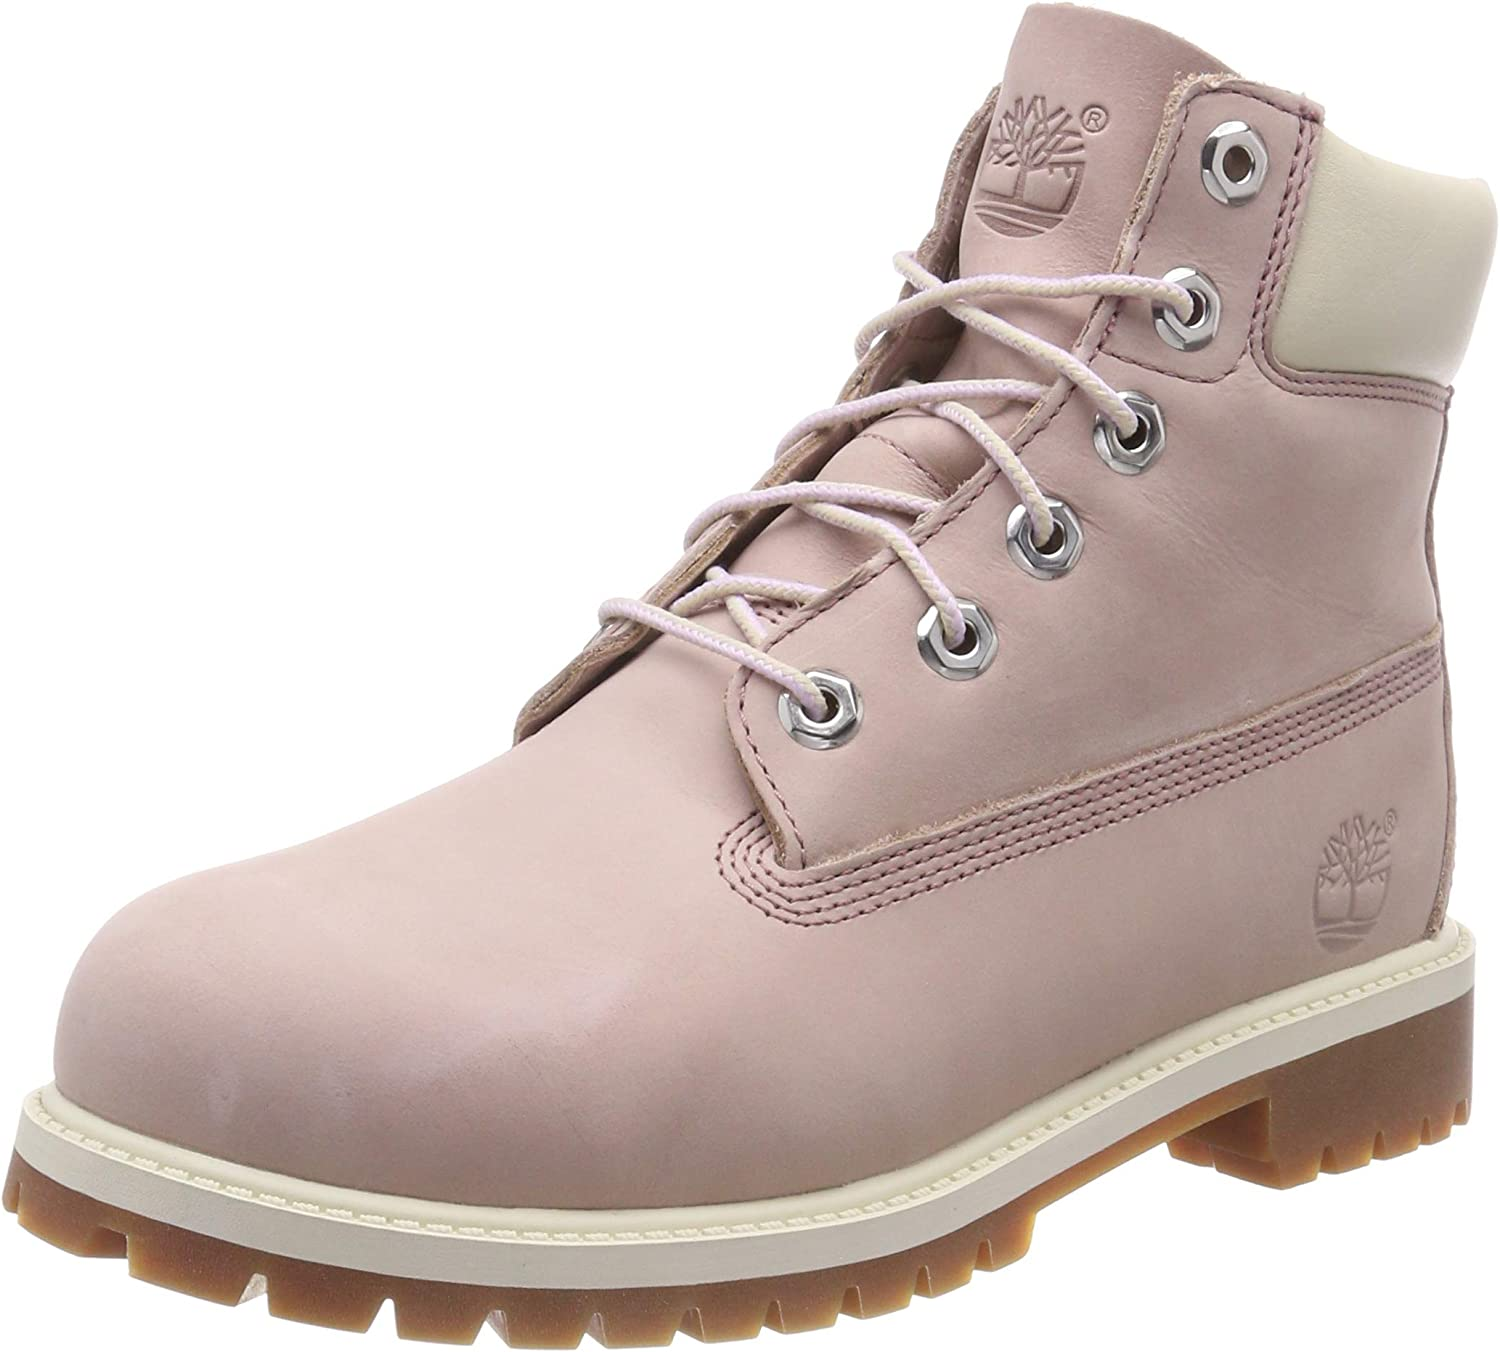 Timberland 6 in Premium Waterproof (Wide Fit), Bottes